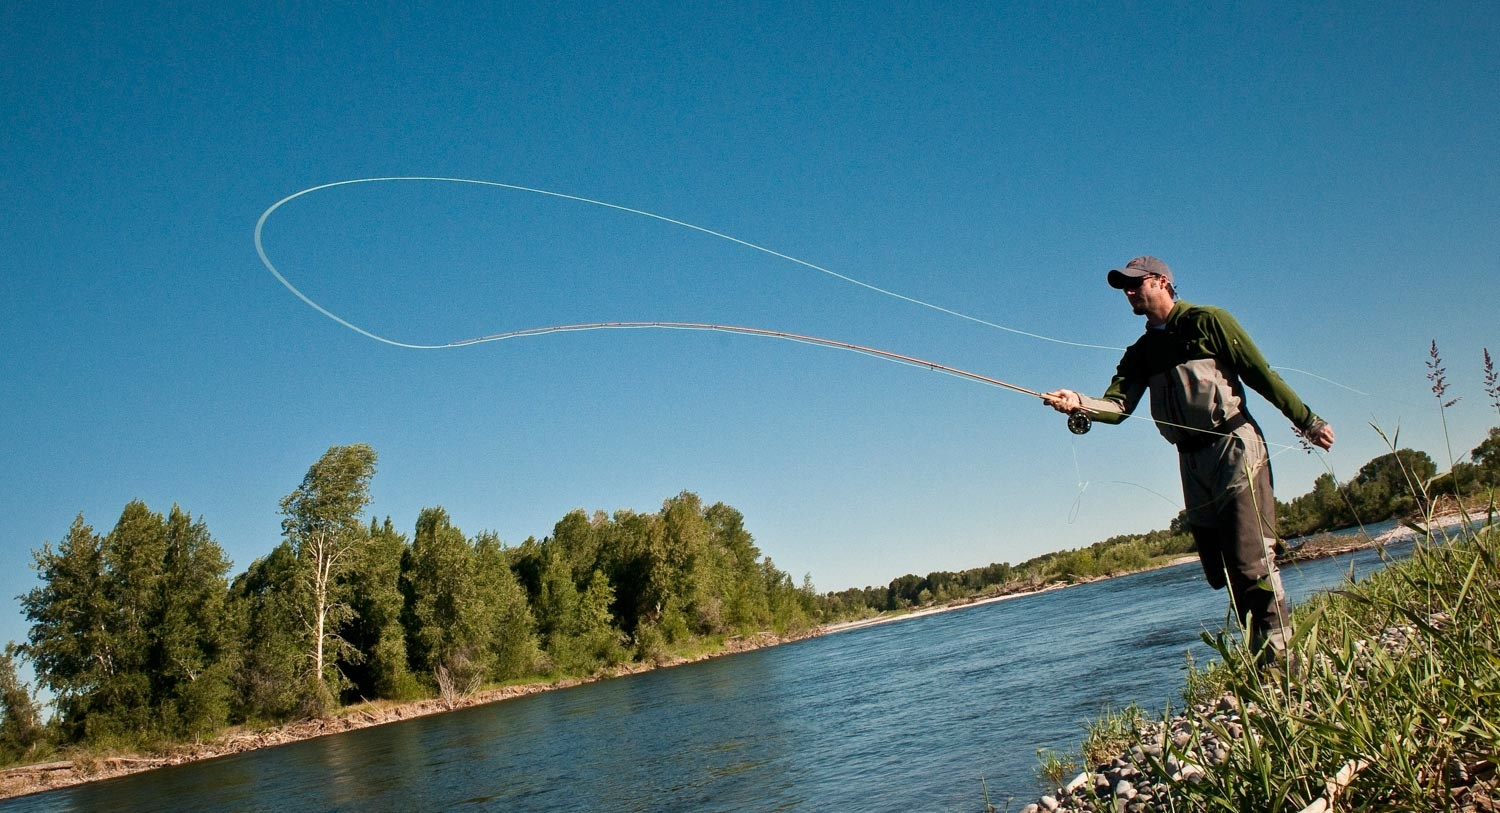 Fly Casting Tip – Rely On Muscle Memory for Difficult Casts